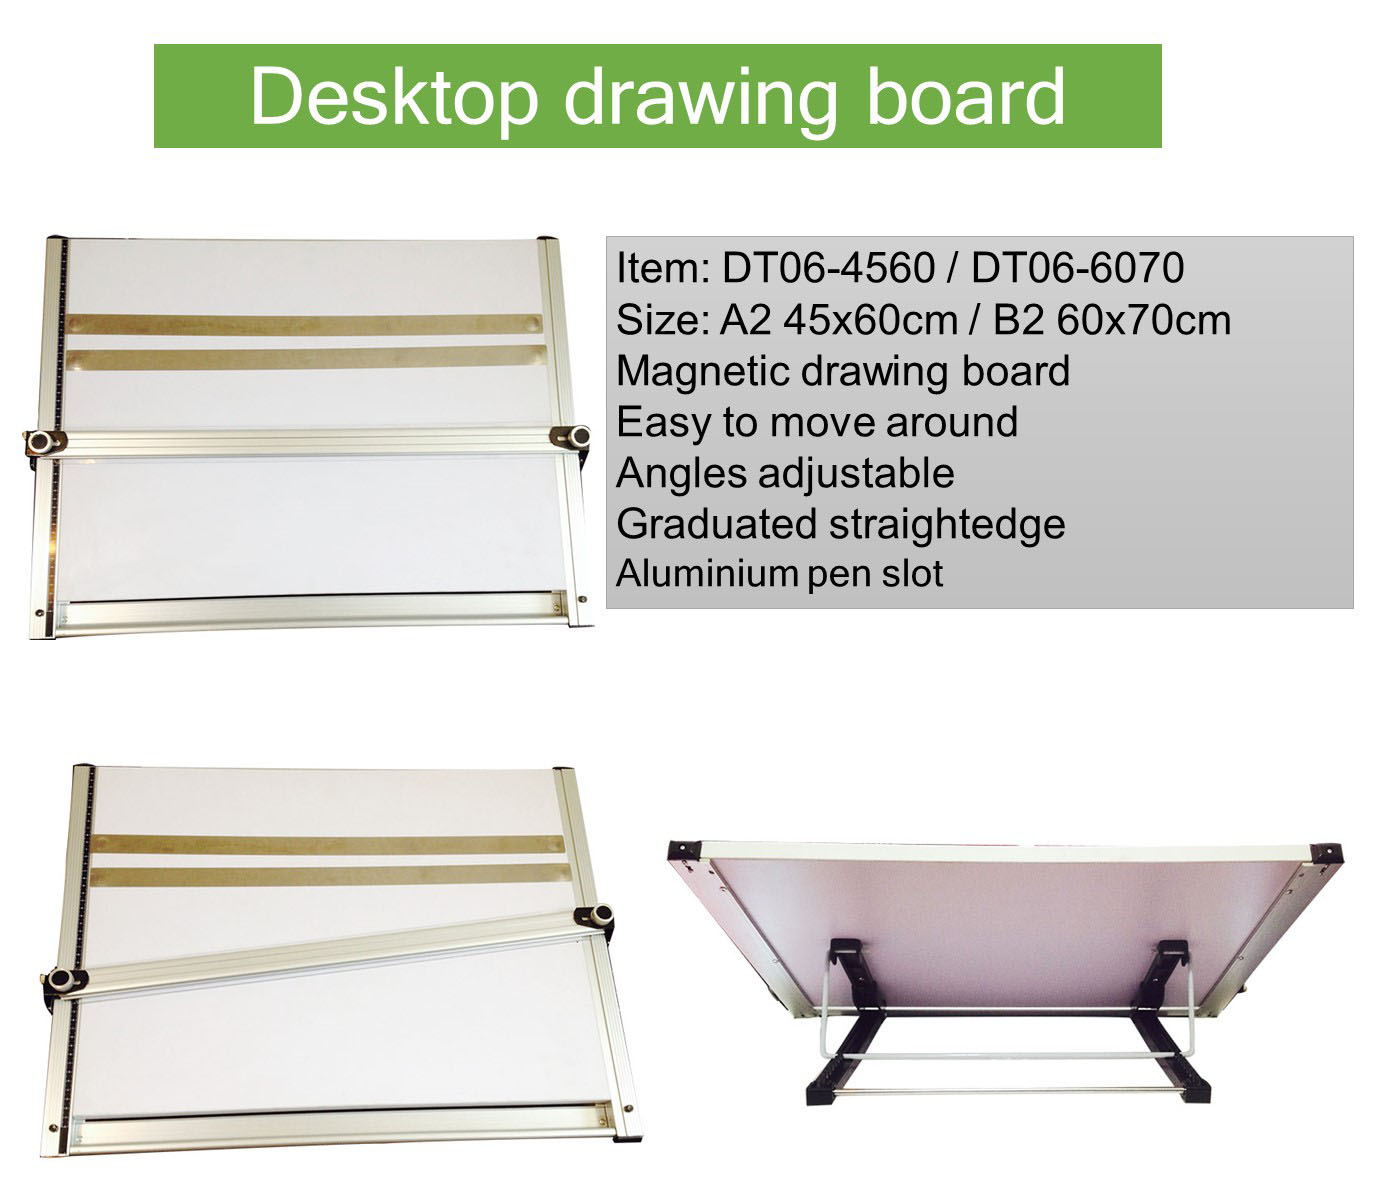 Desktop drawing board